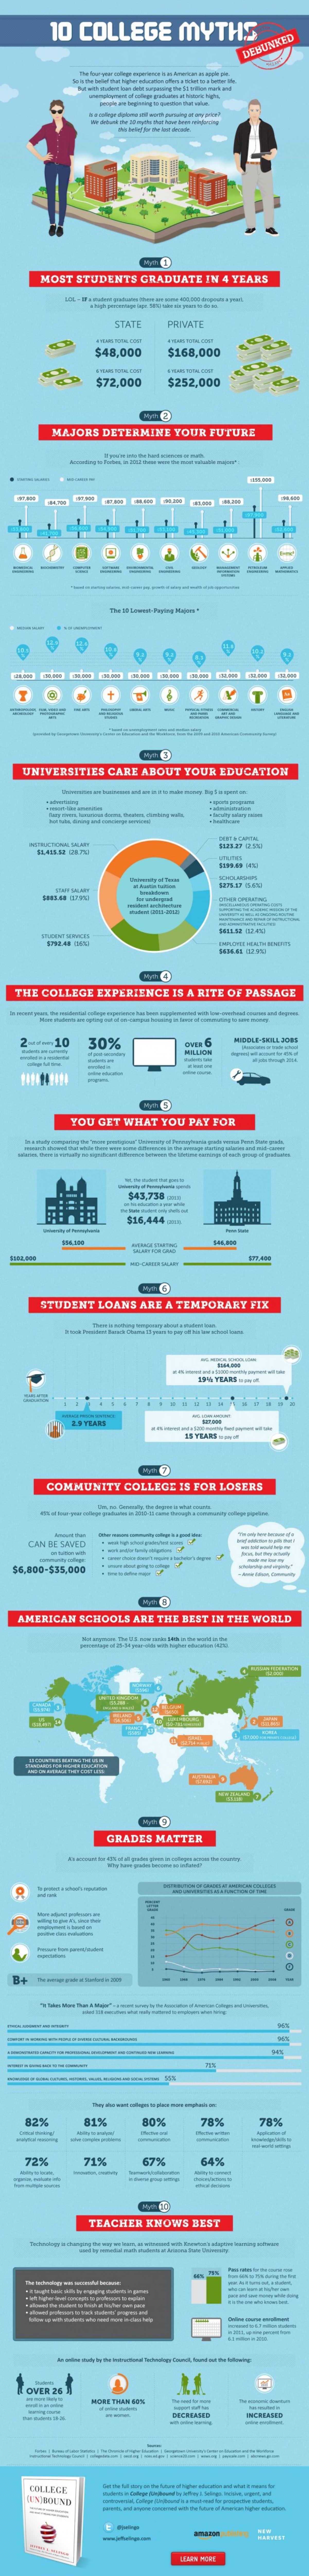 10 College Myths Debunked  Infographic